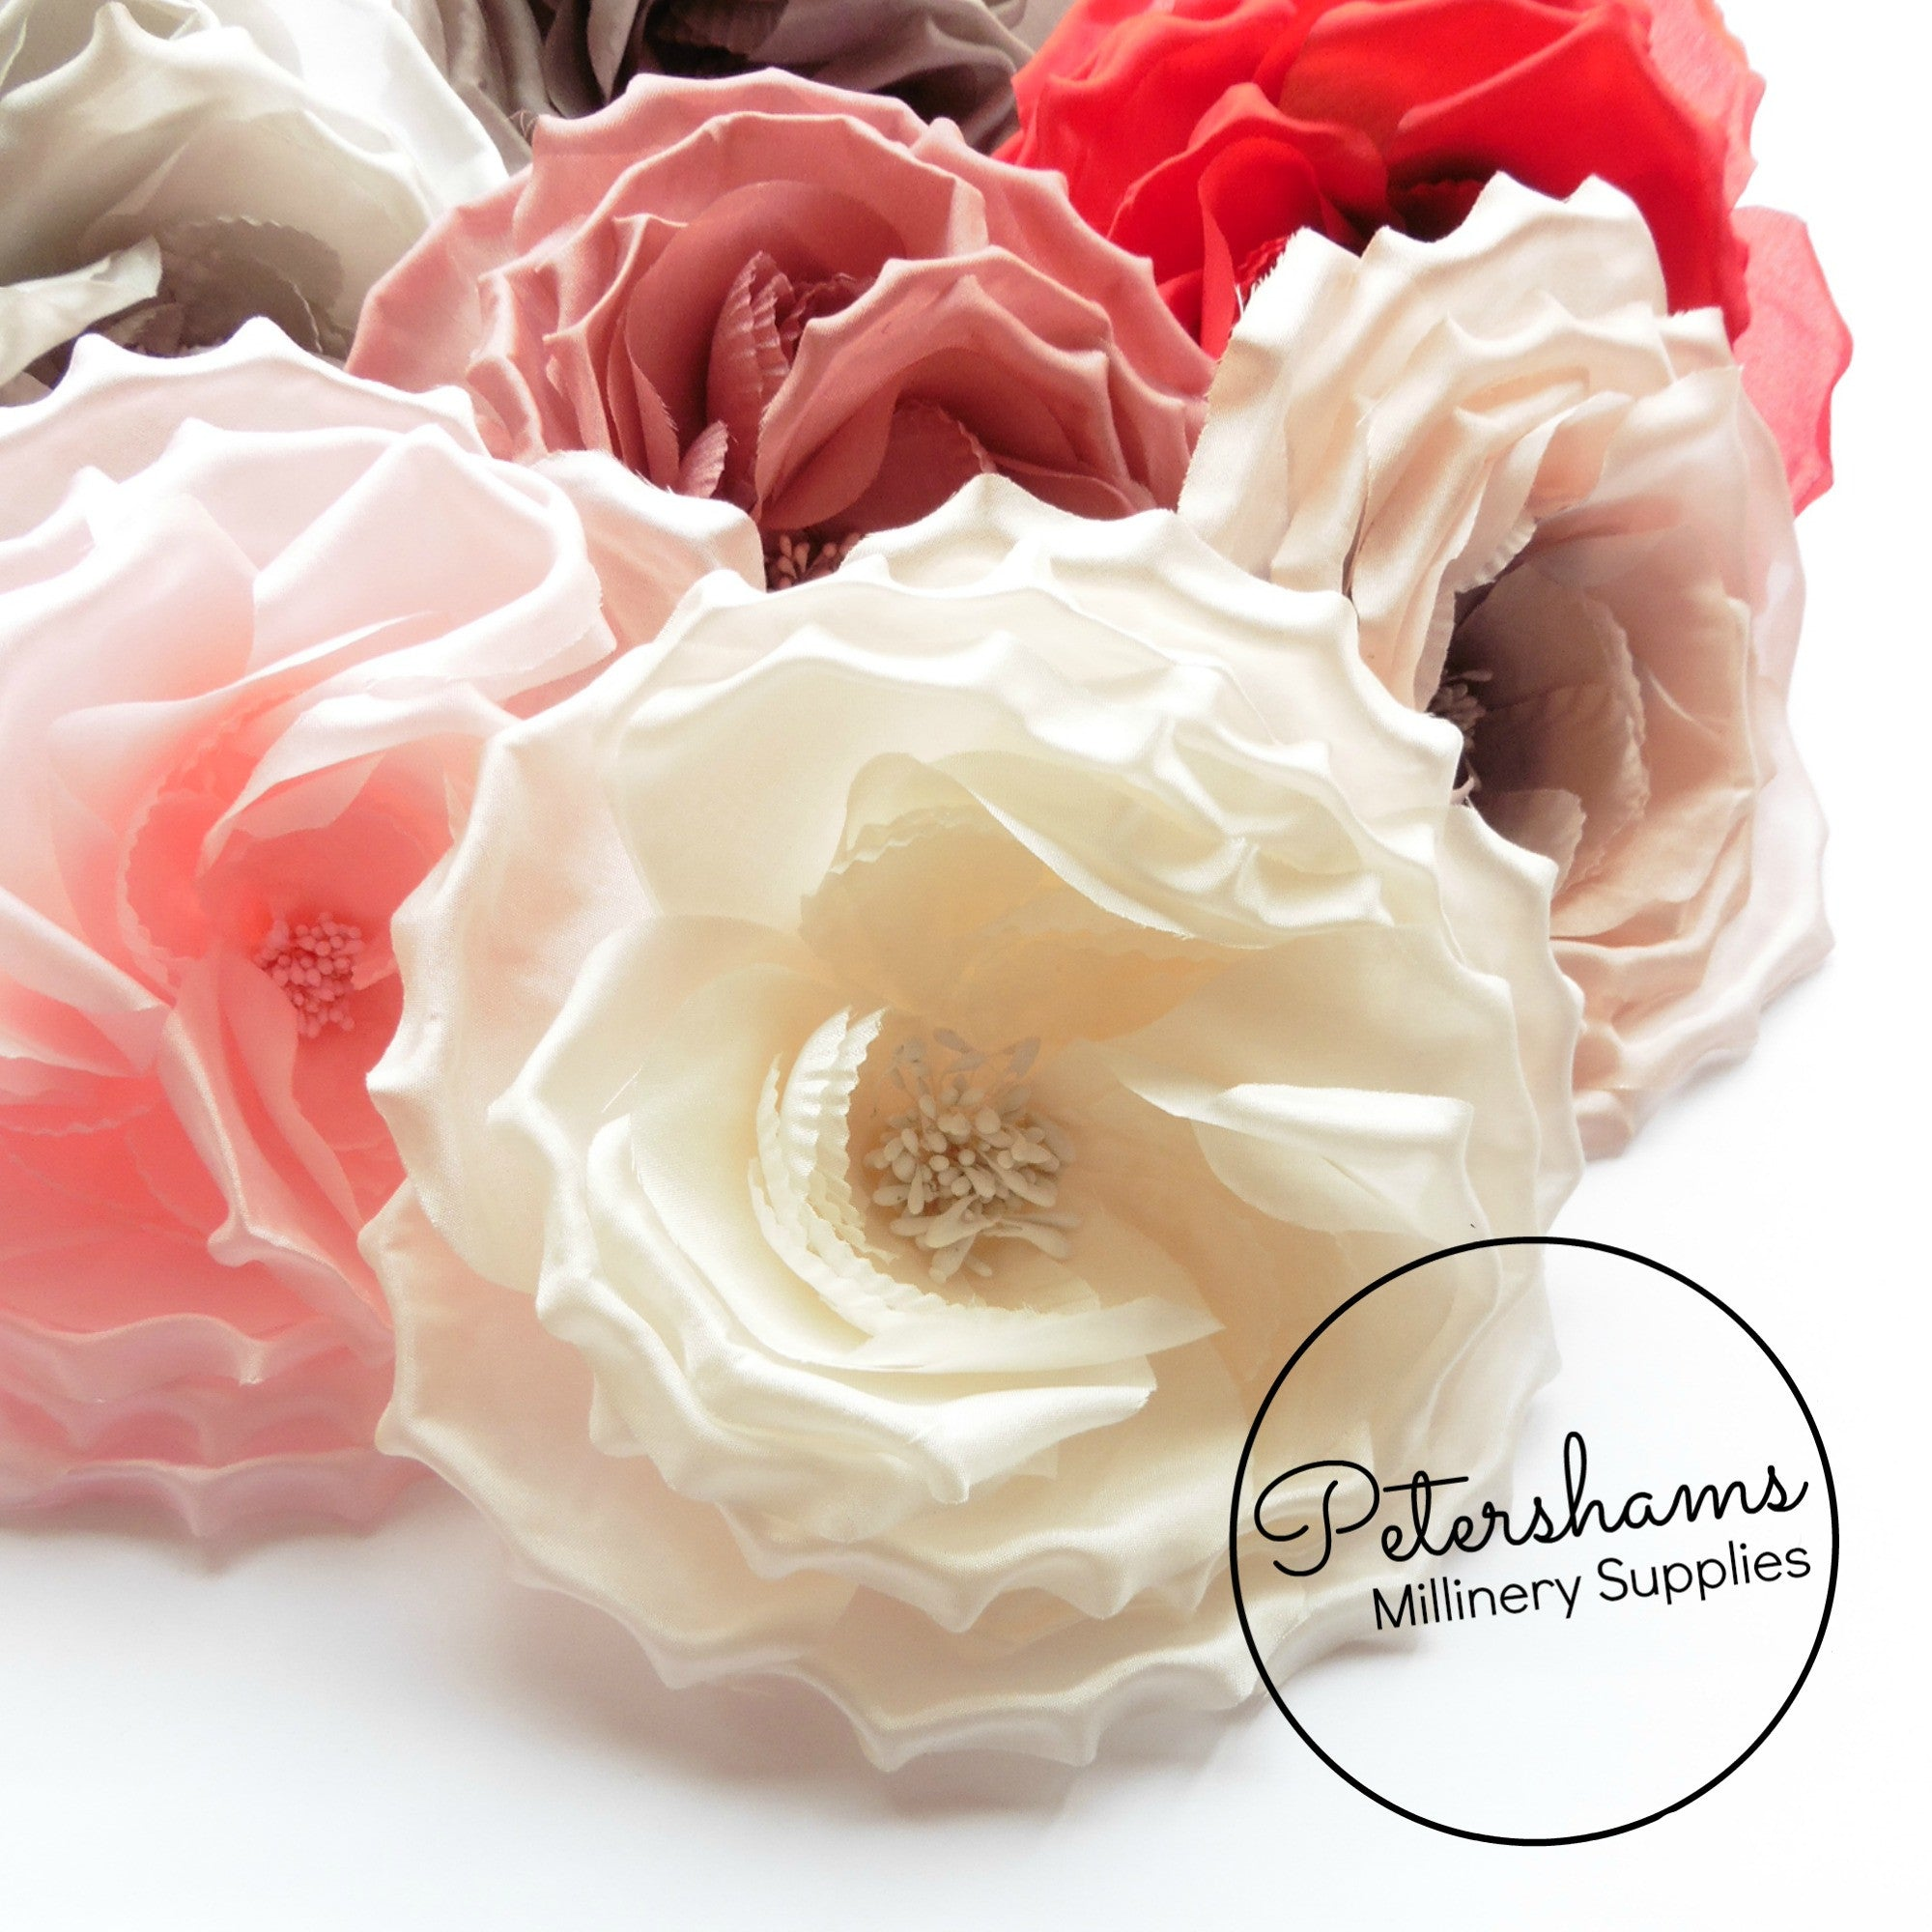 Flowers leaves petershams millinery supplies danielle large 15cm silk rose millinery flower hat mount mightylinksfo